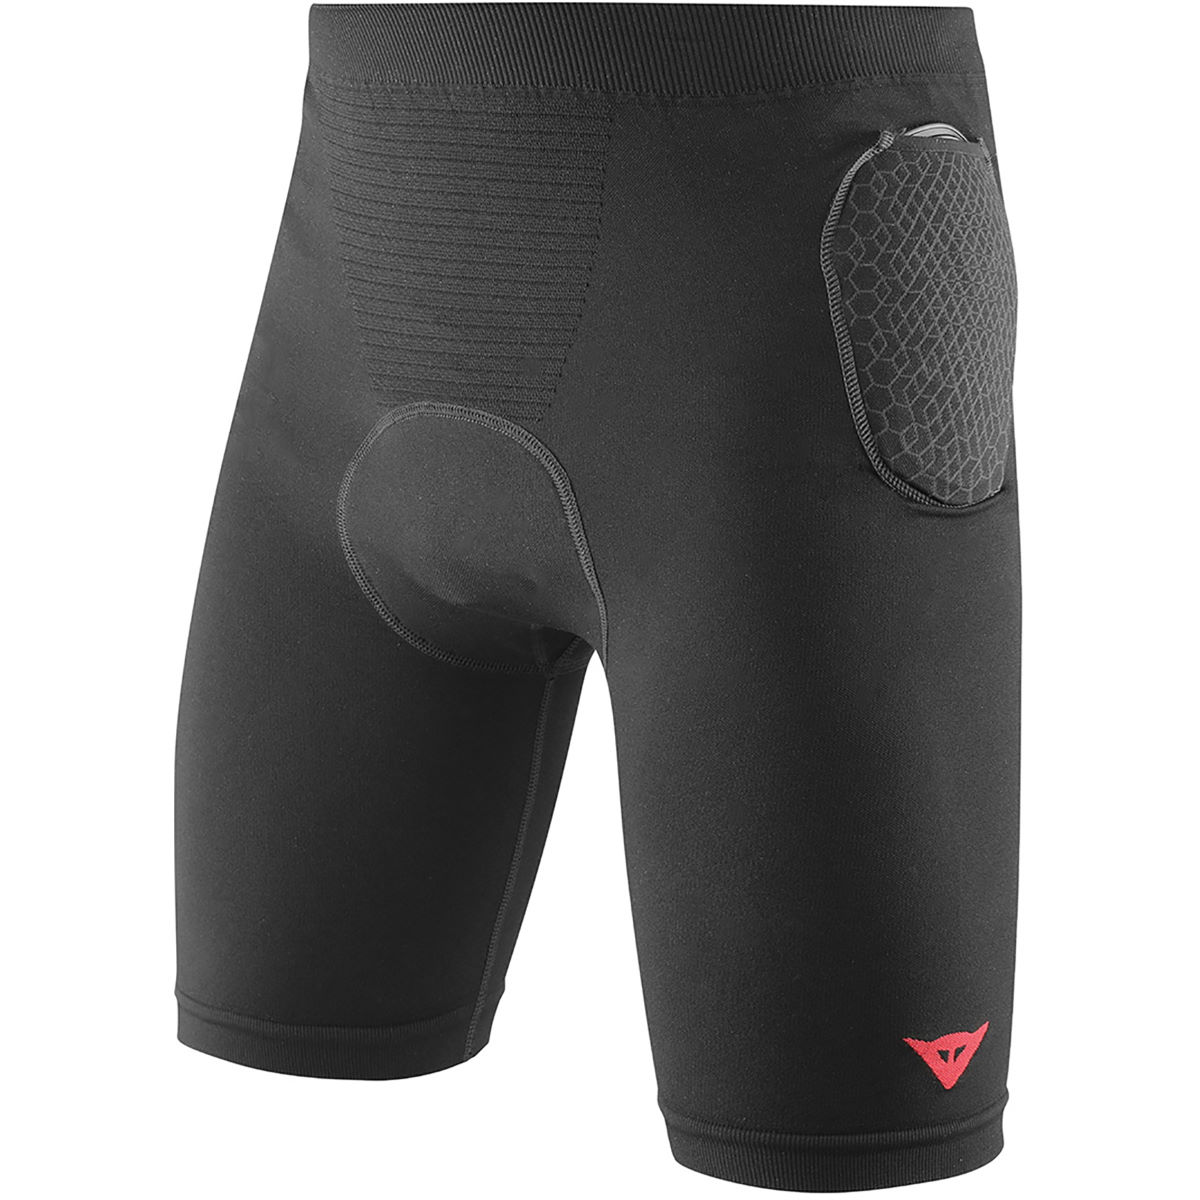 Dainese Trailknit Pro Armour Short - Pantalones protectores